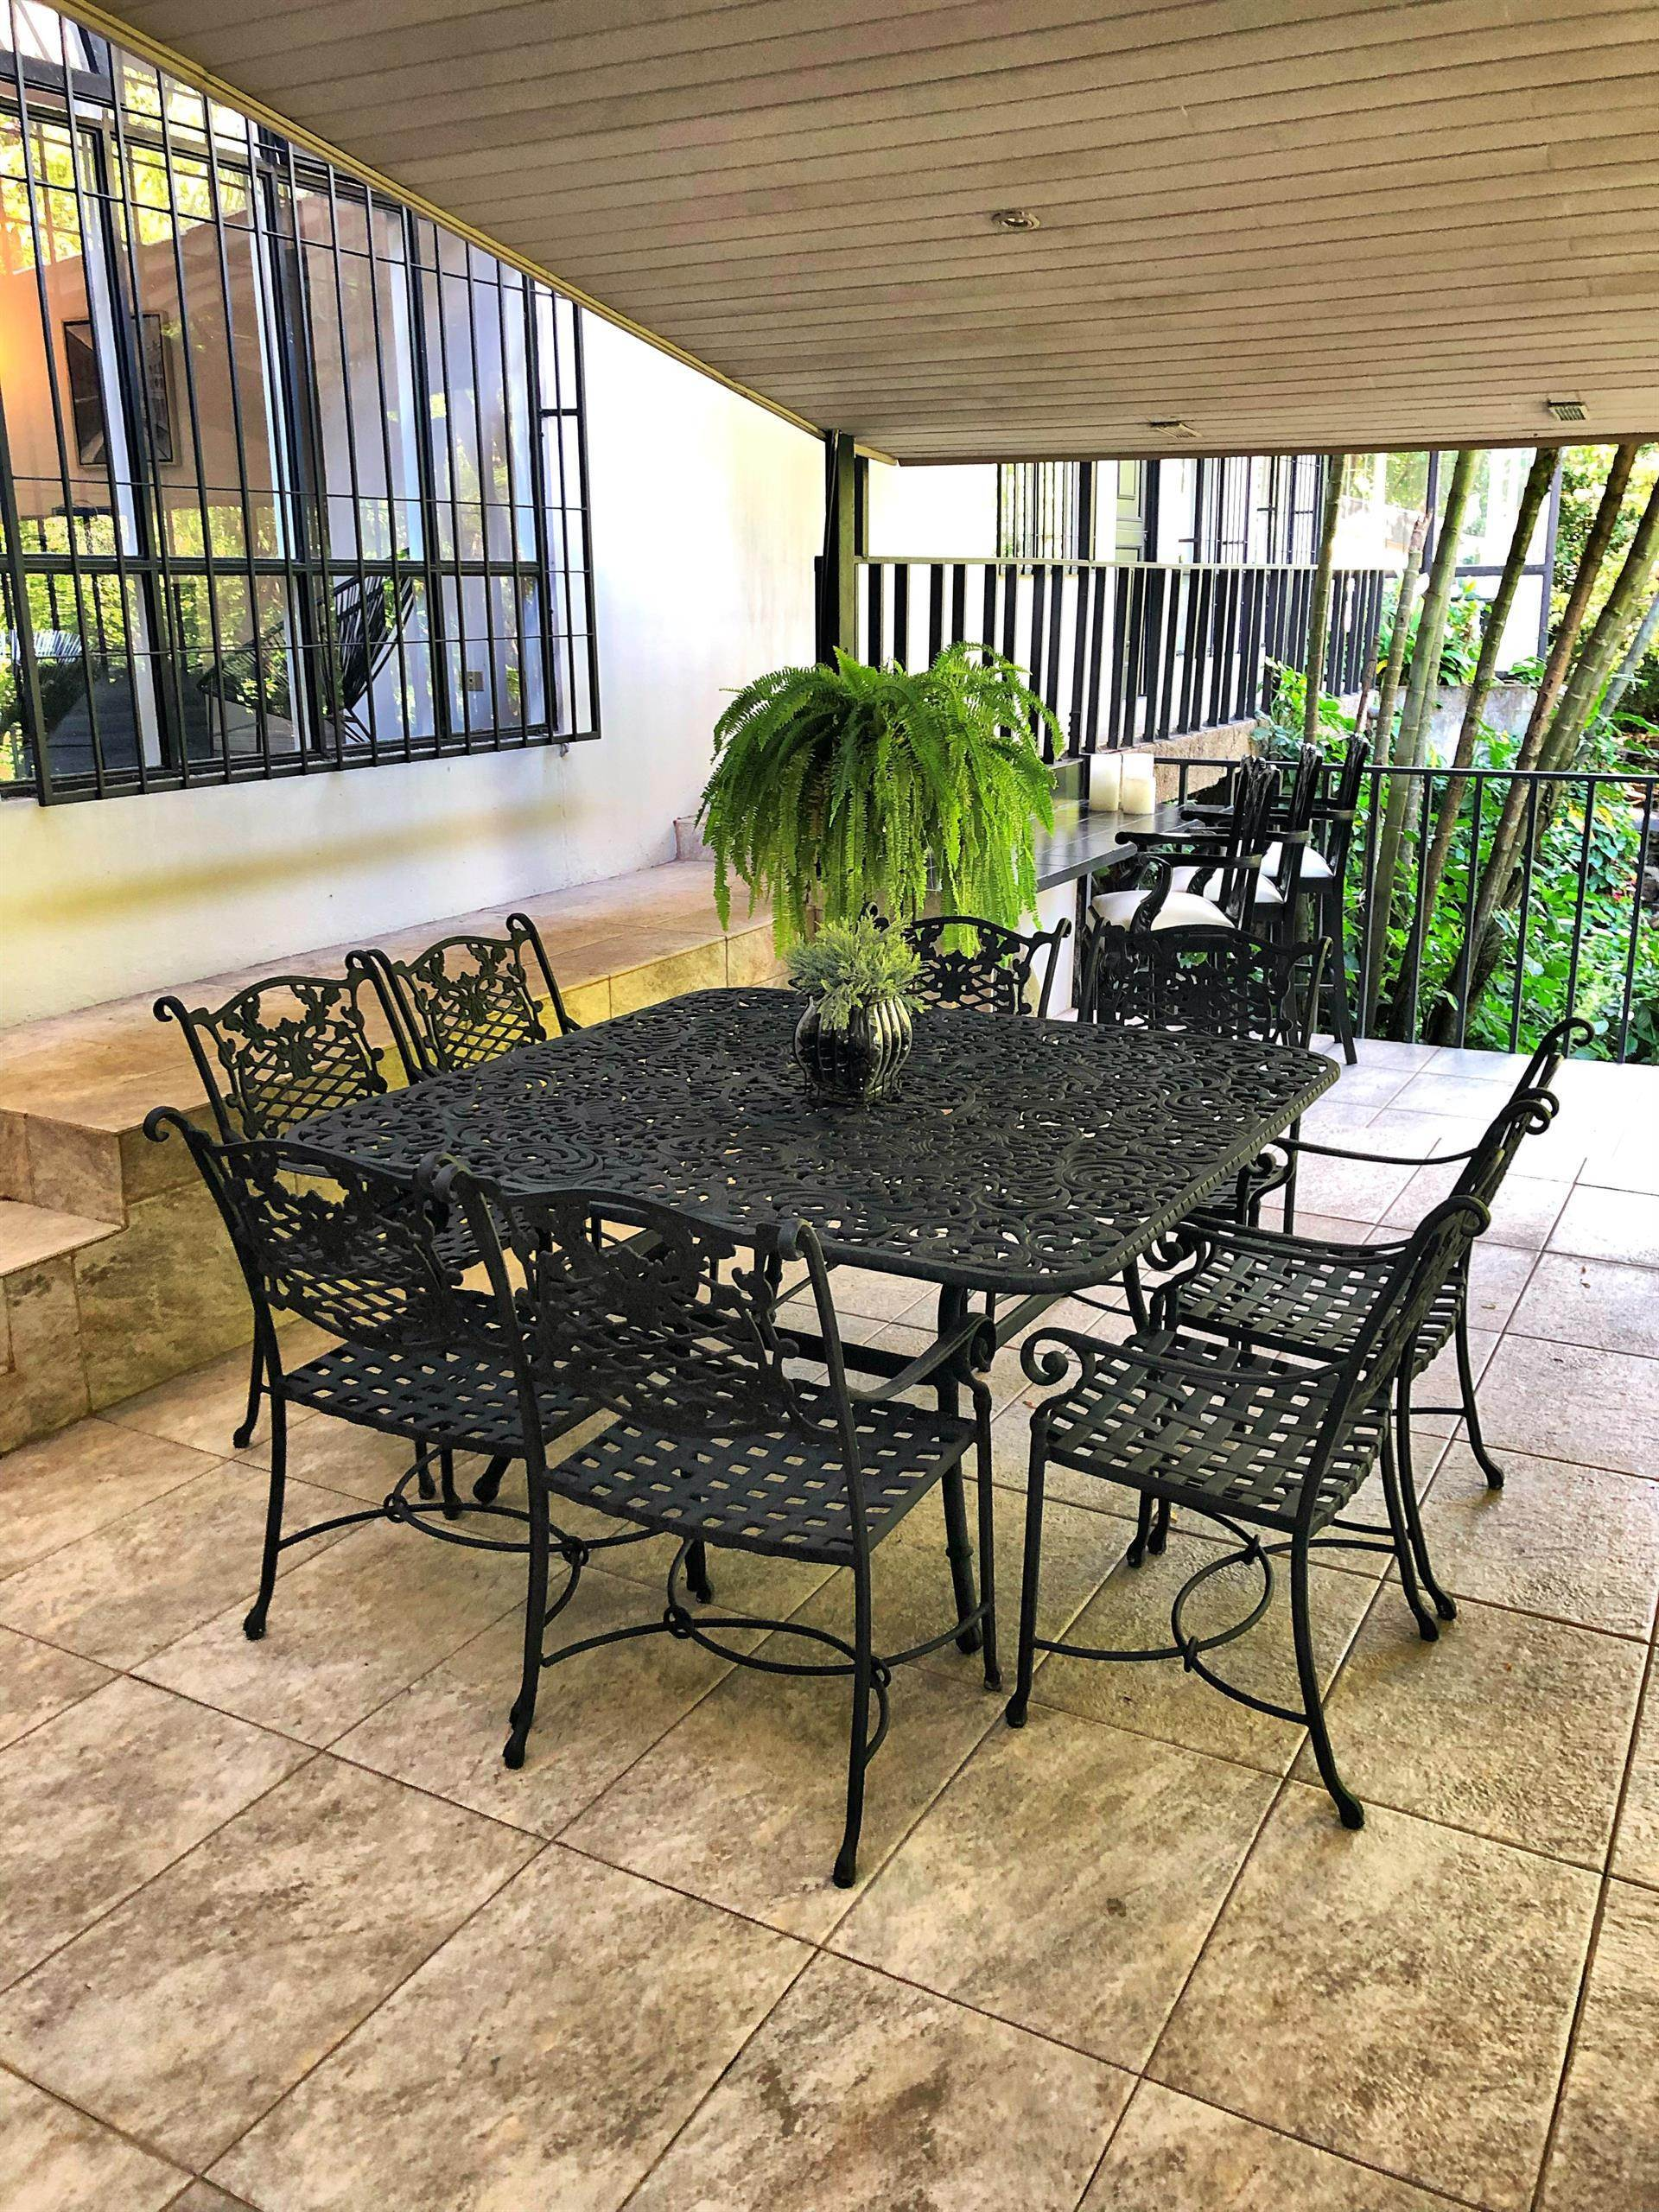 7. Single Family Home için Satış at Elegant Escazú Home Escazu, San José Escazu, San Jose,10201 Koşta Rika